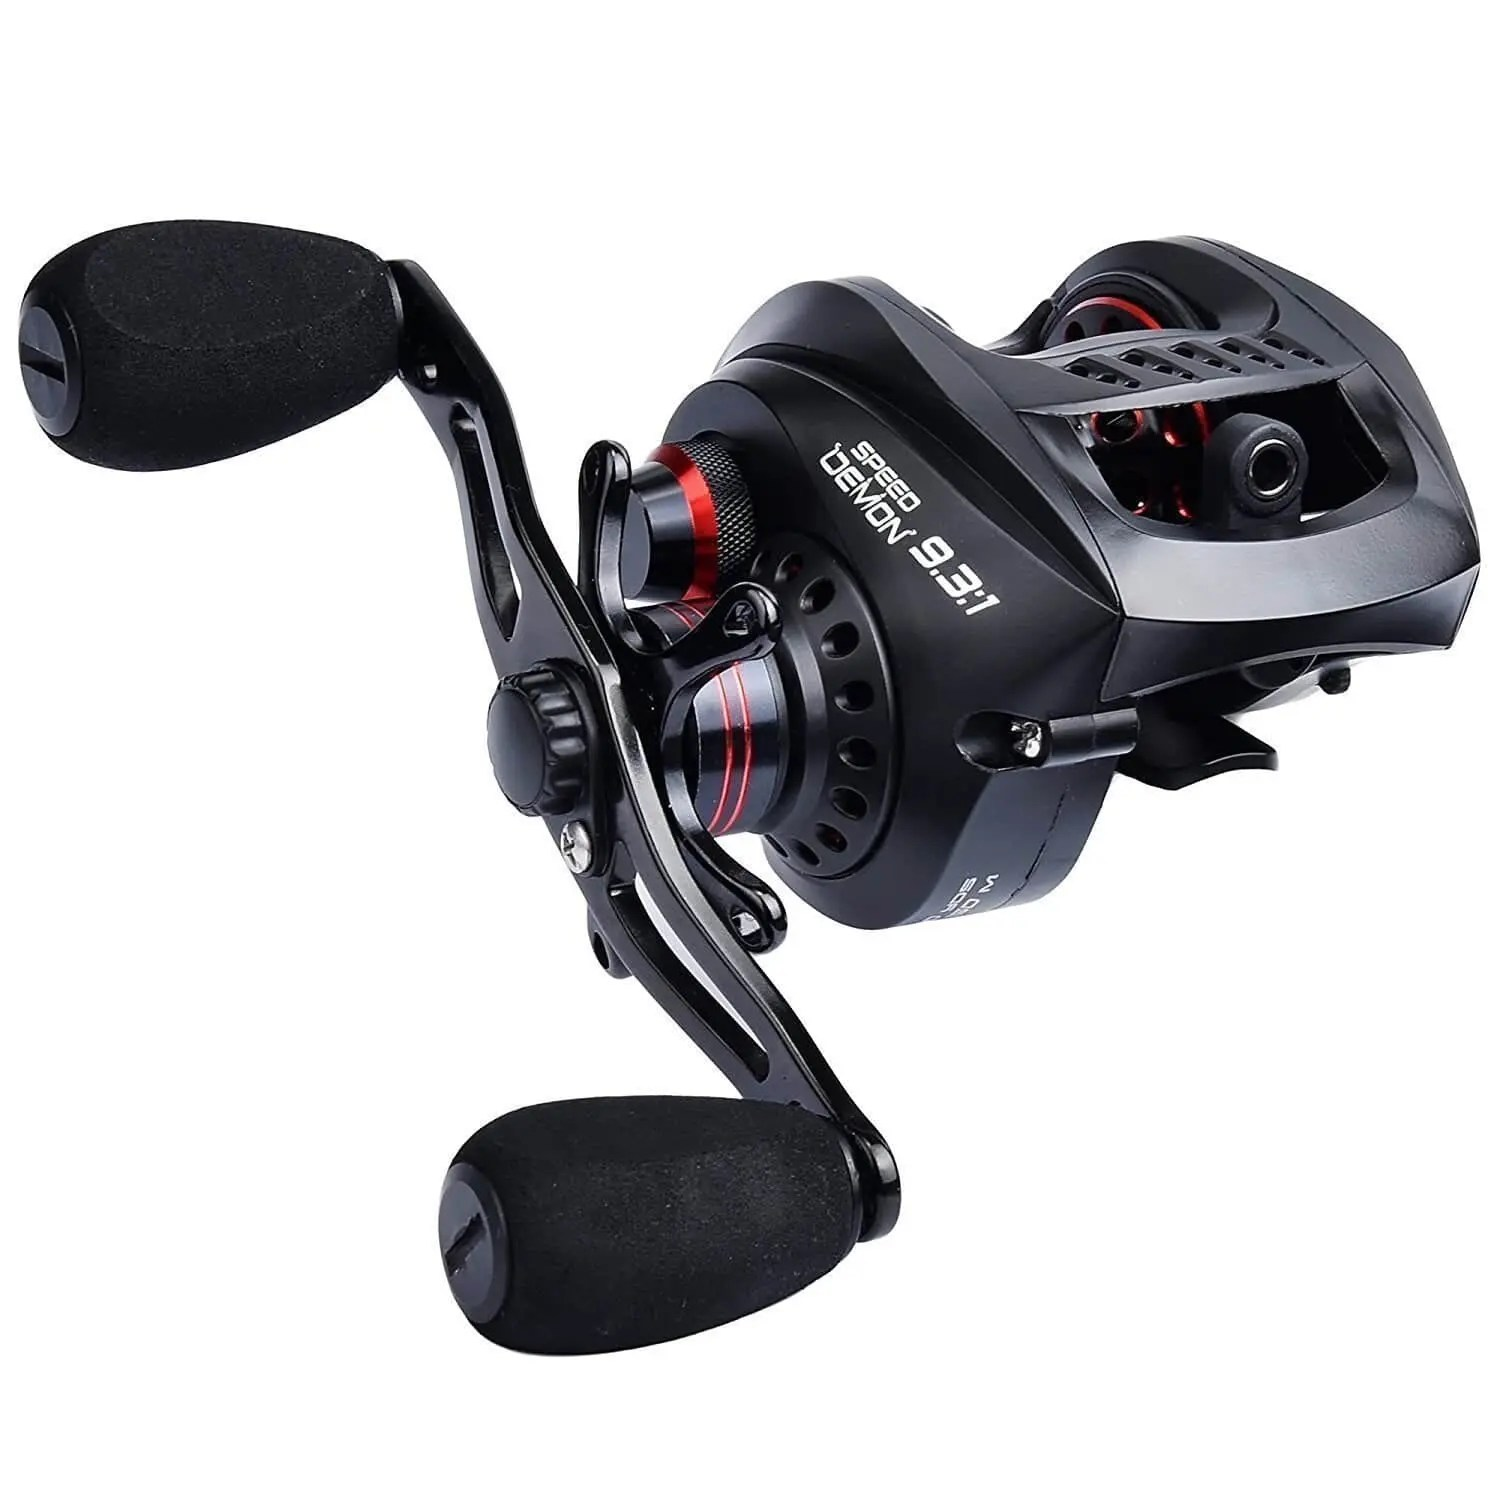 KastKing Speed Demon 9 3 1 Baitcasting Fishing Reel